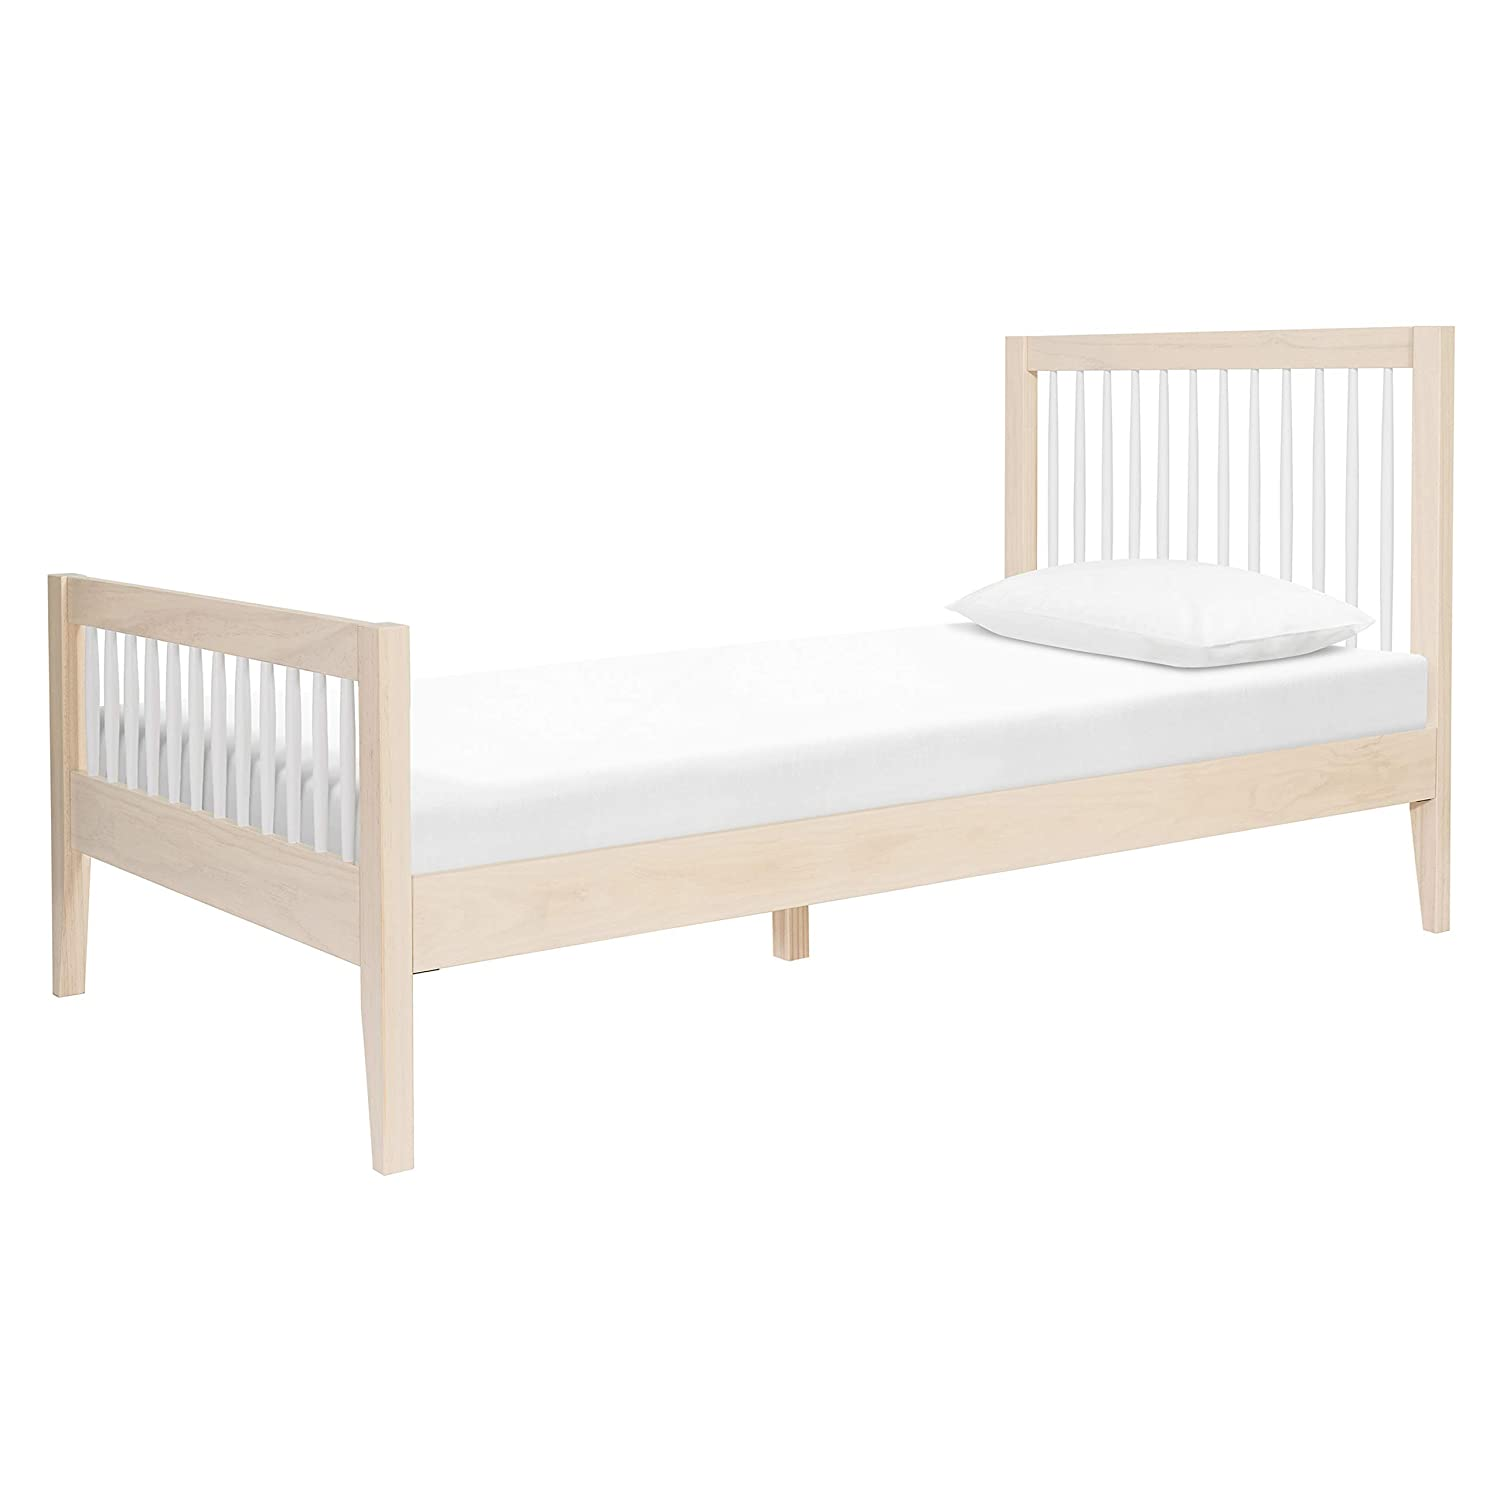 Amazon Com Babyletto Sprout Platform Twin Bed In Washed Natural White Mattress Support Slats Included No Box Spring Needed Baby